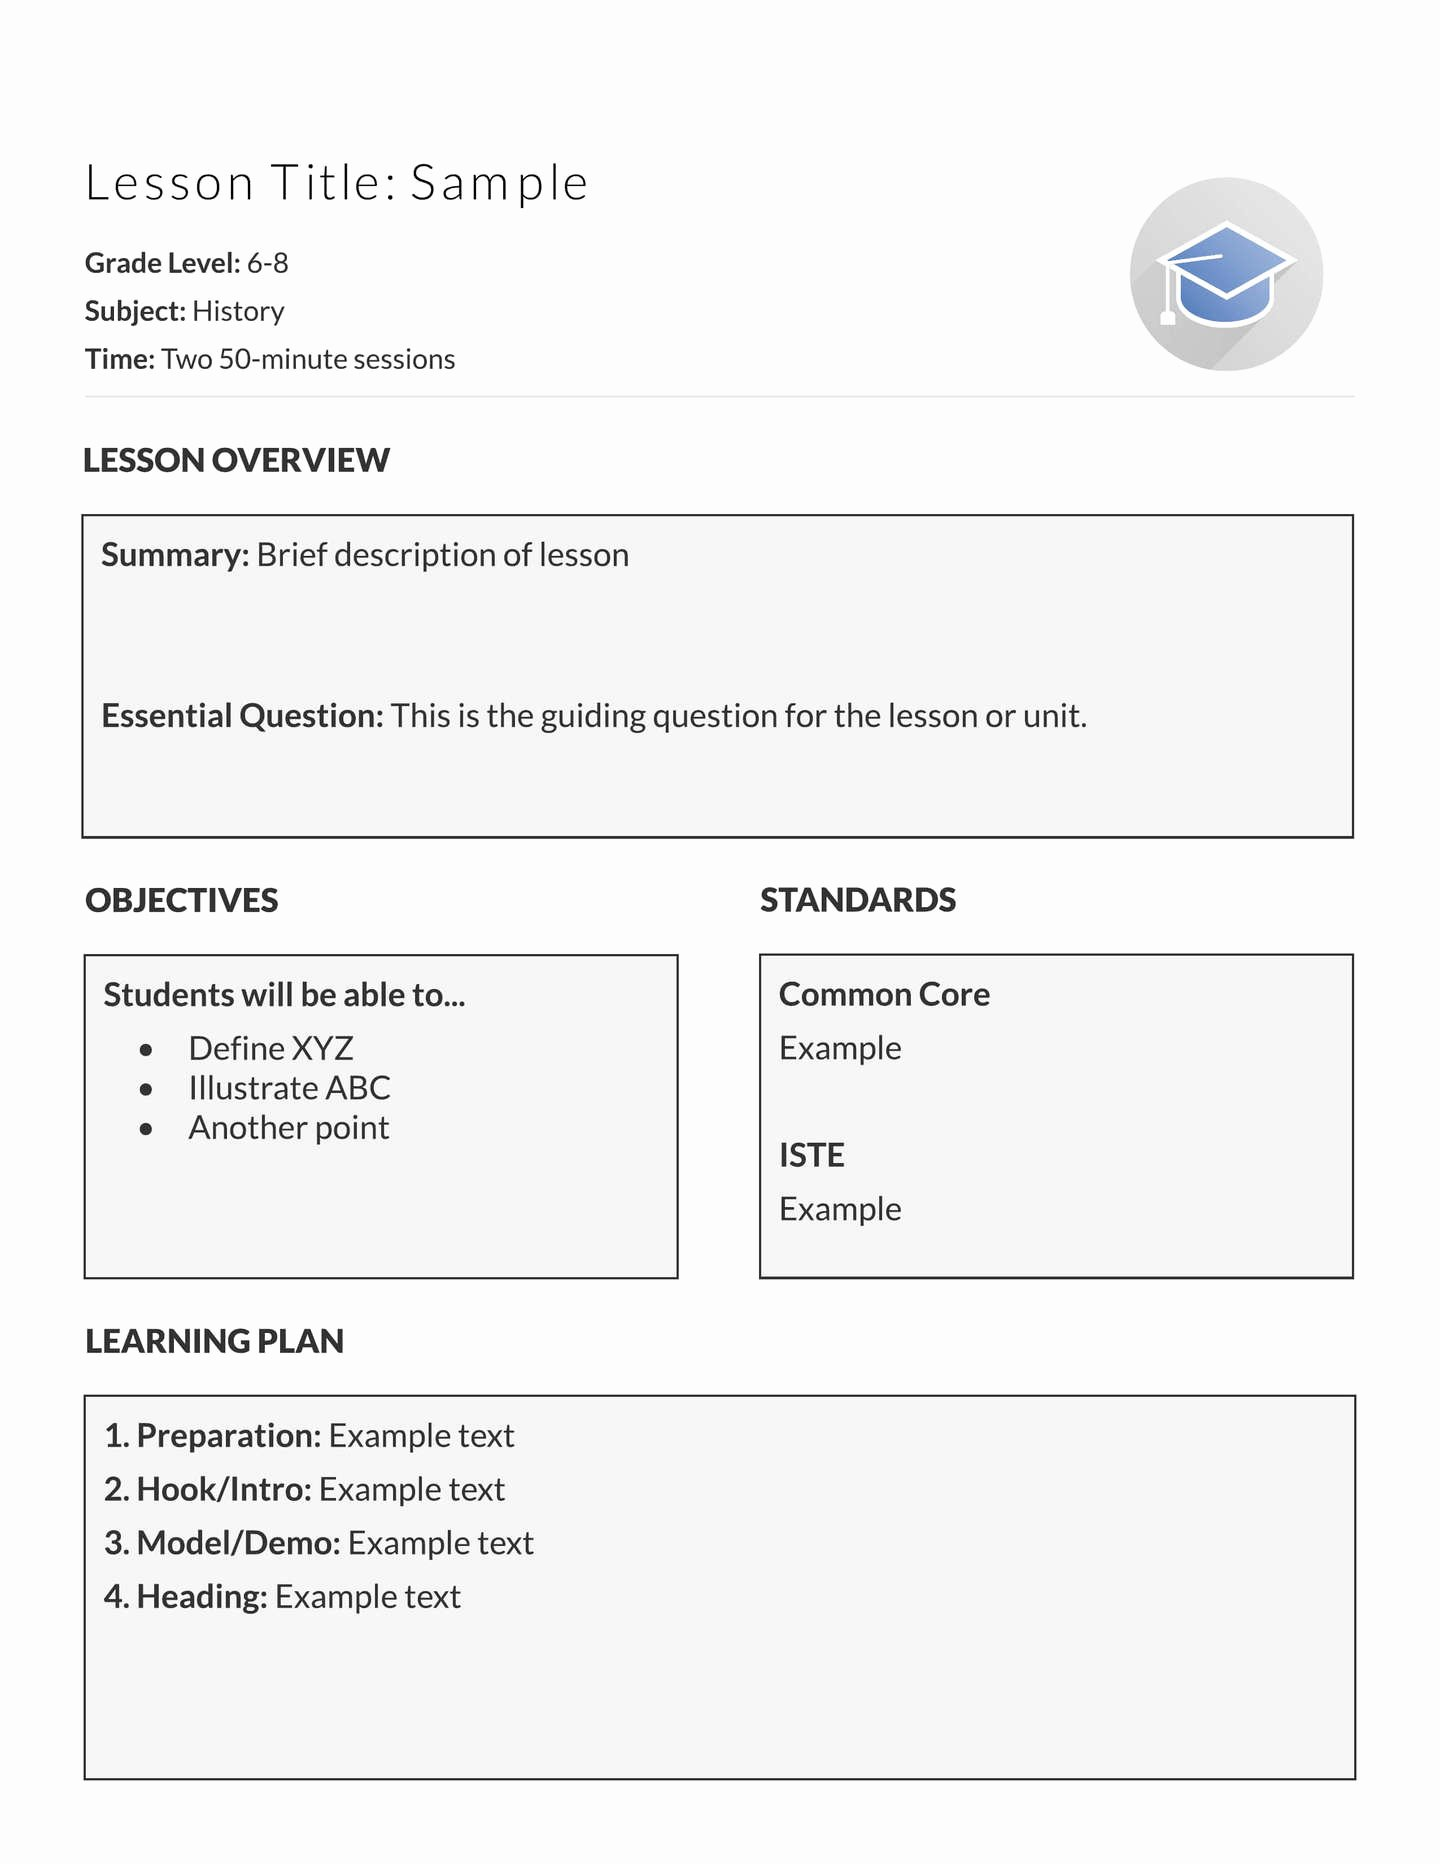 Teacher Lesson Plans Template Inspirational 5 Free Lesson Plan Templates & Examples Lucidpress